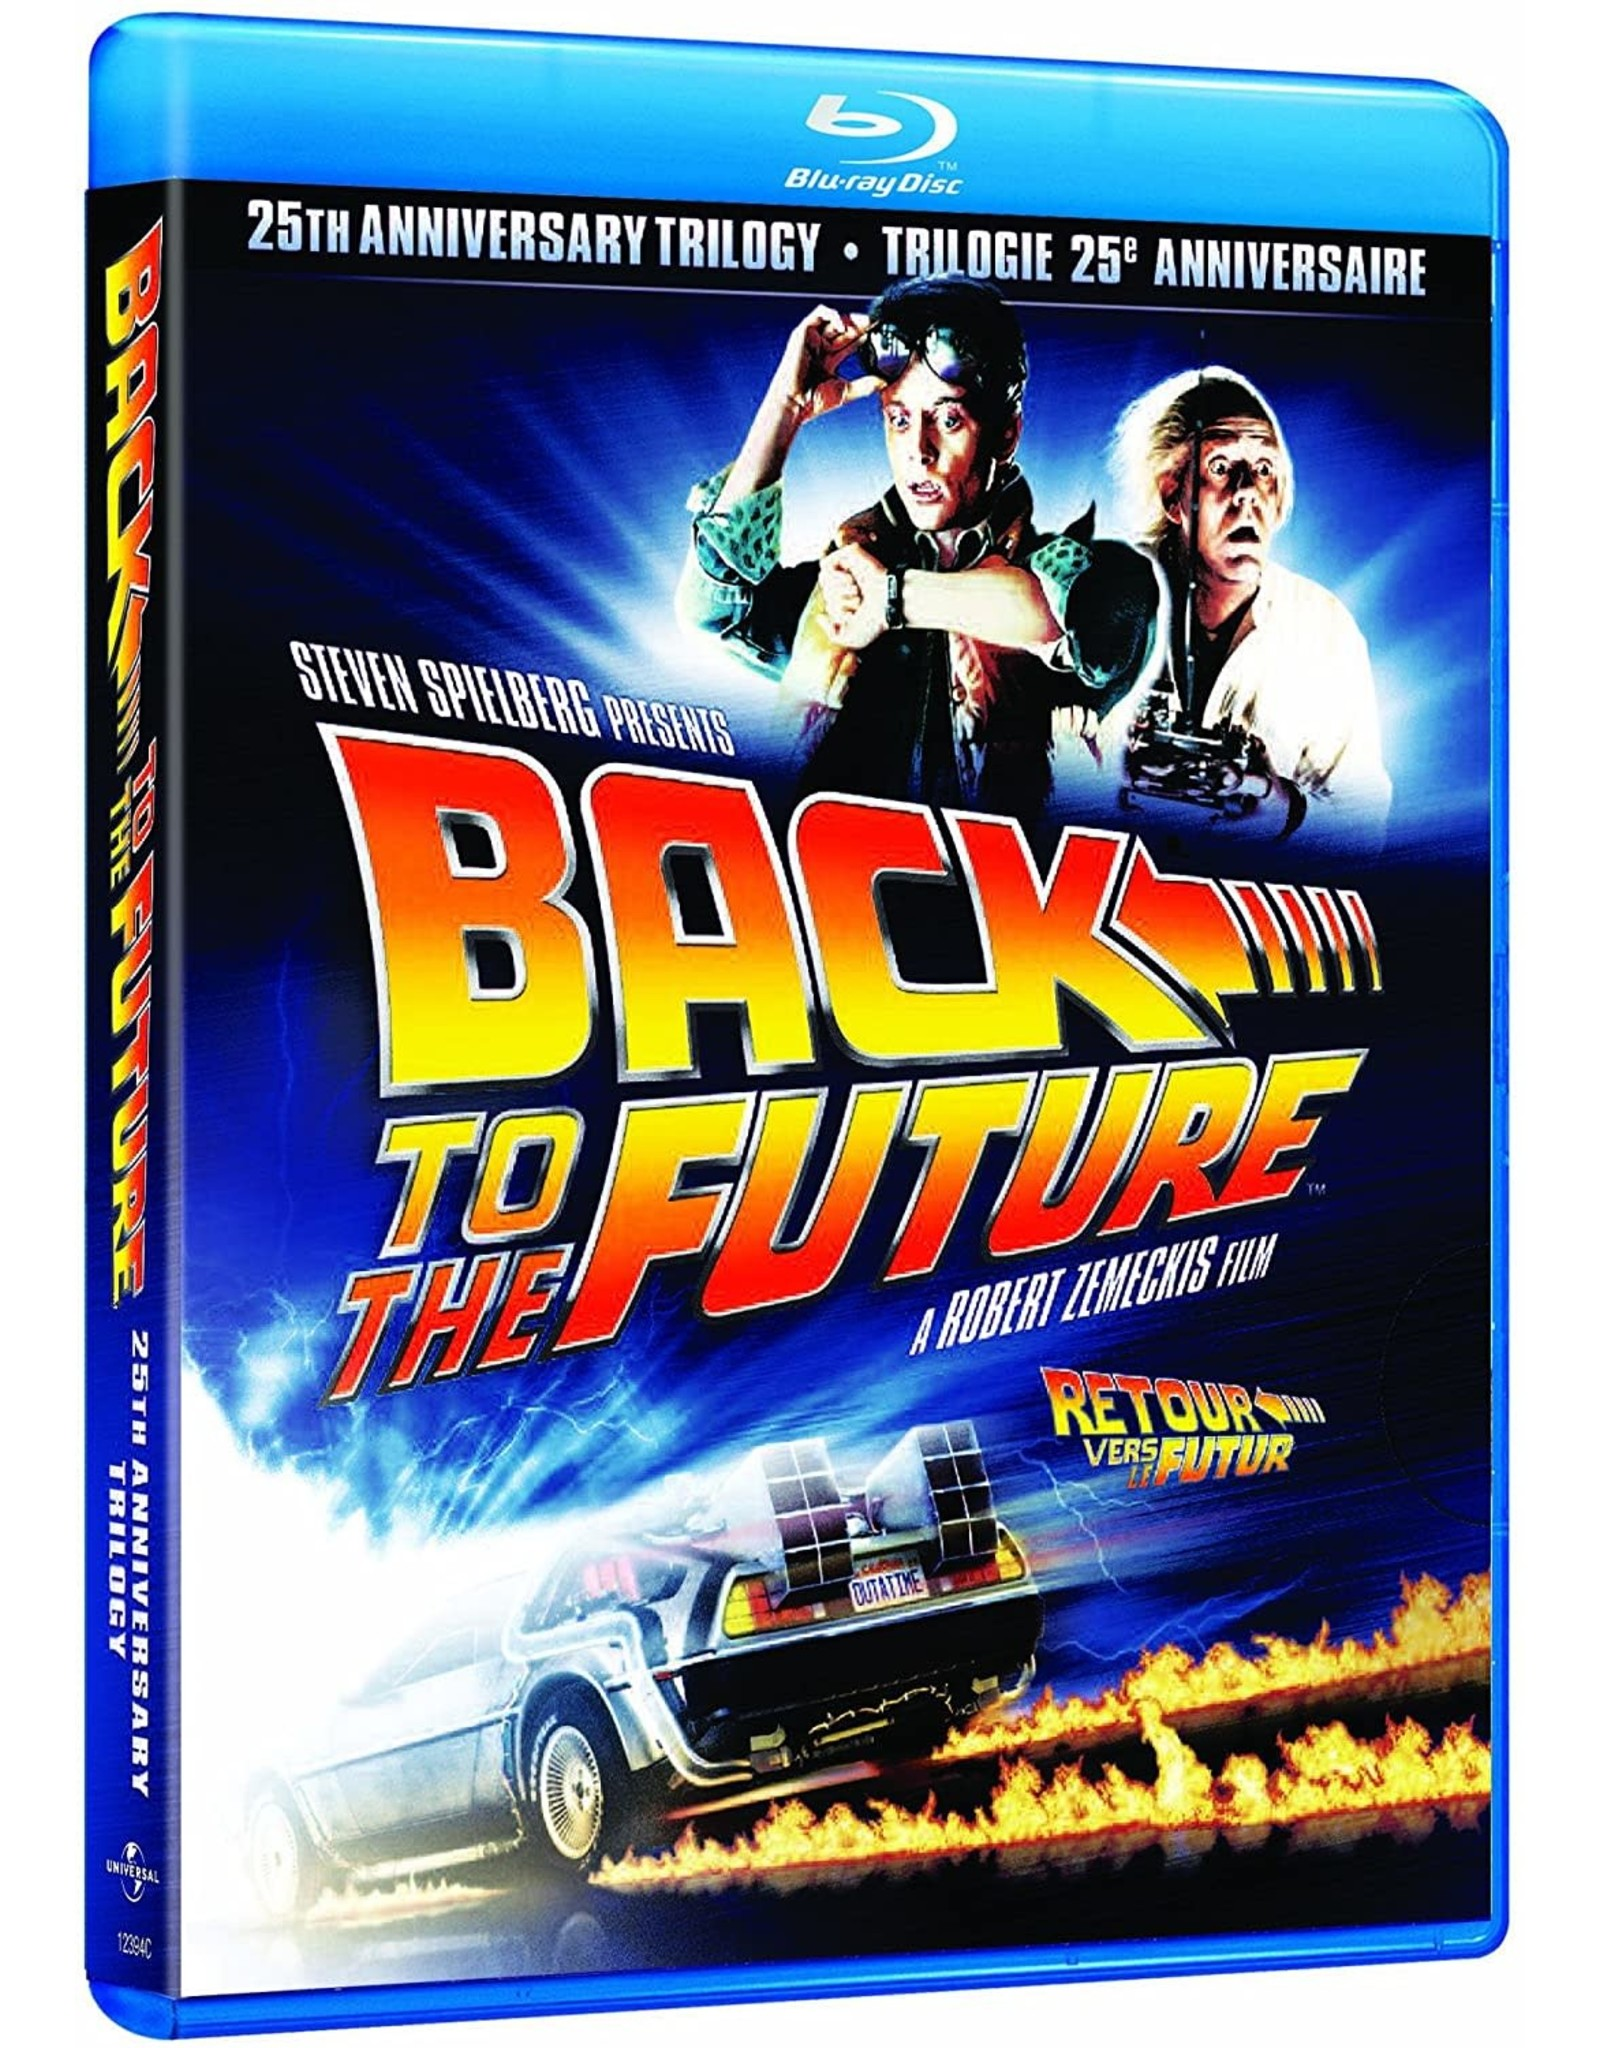 Cult and Cool Back to the Future 25th Anniversary Trilogy